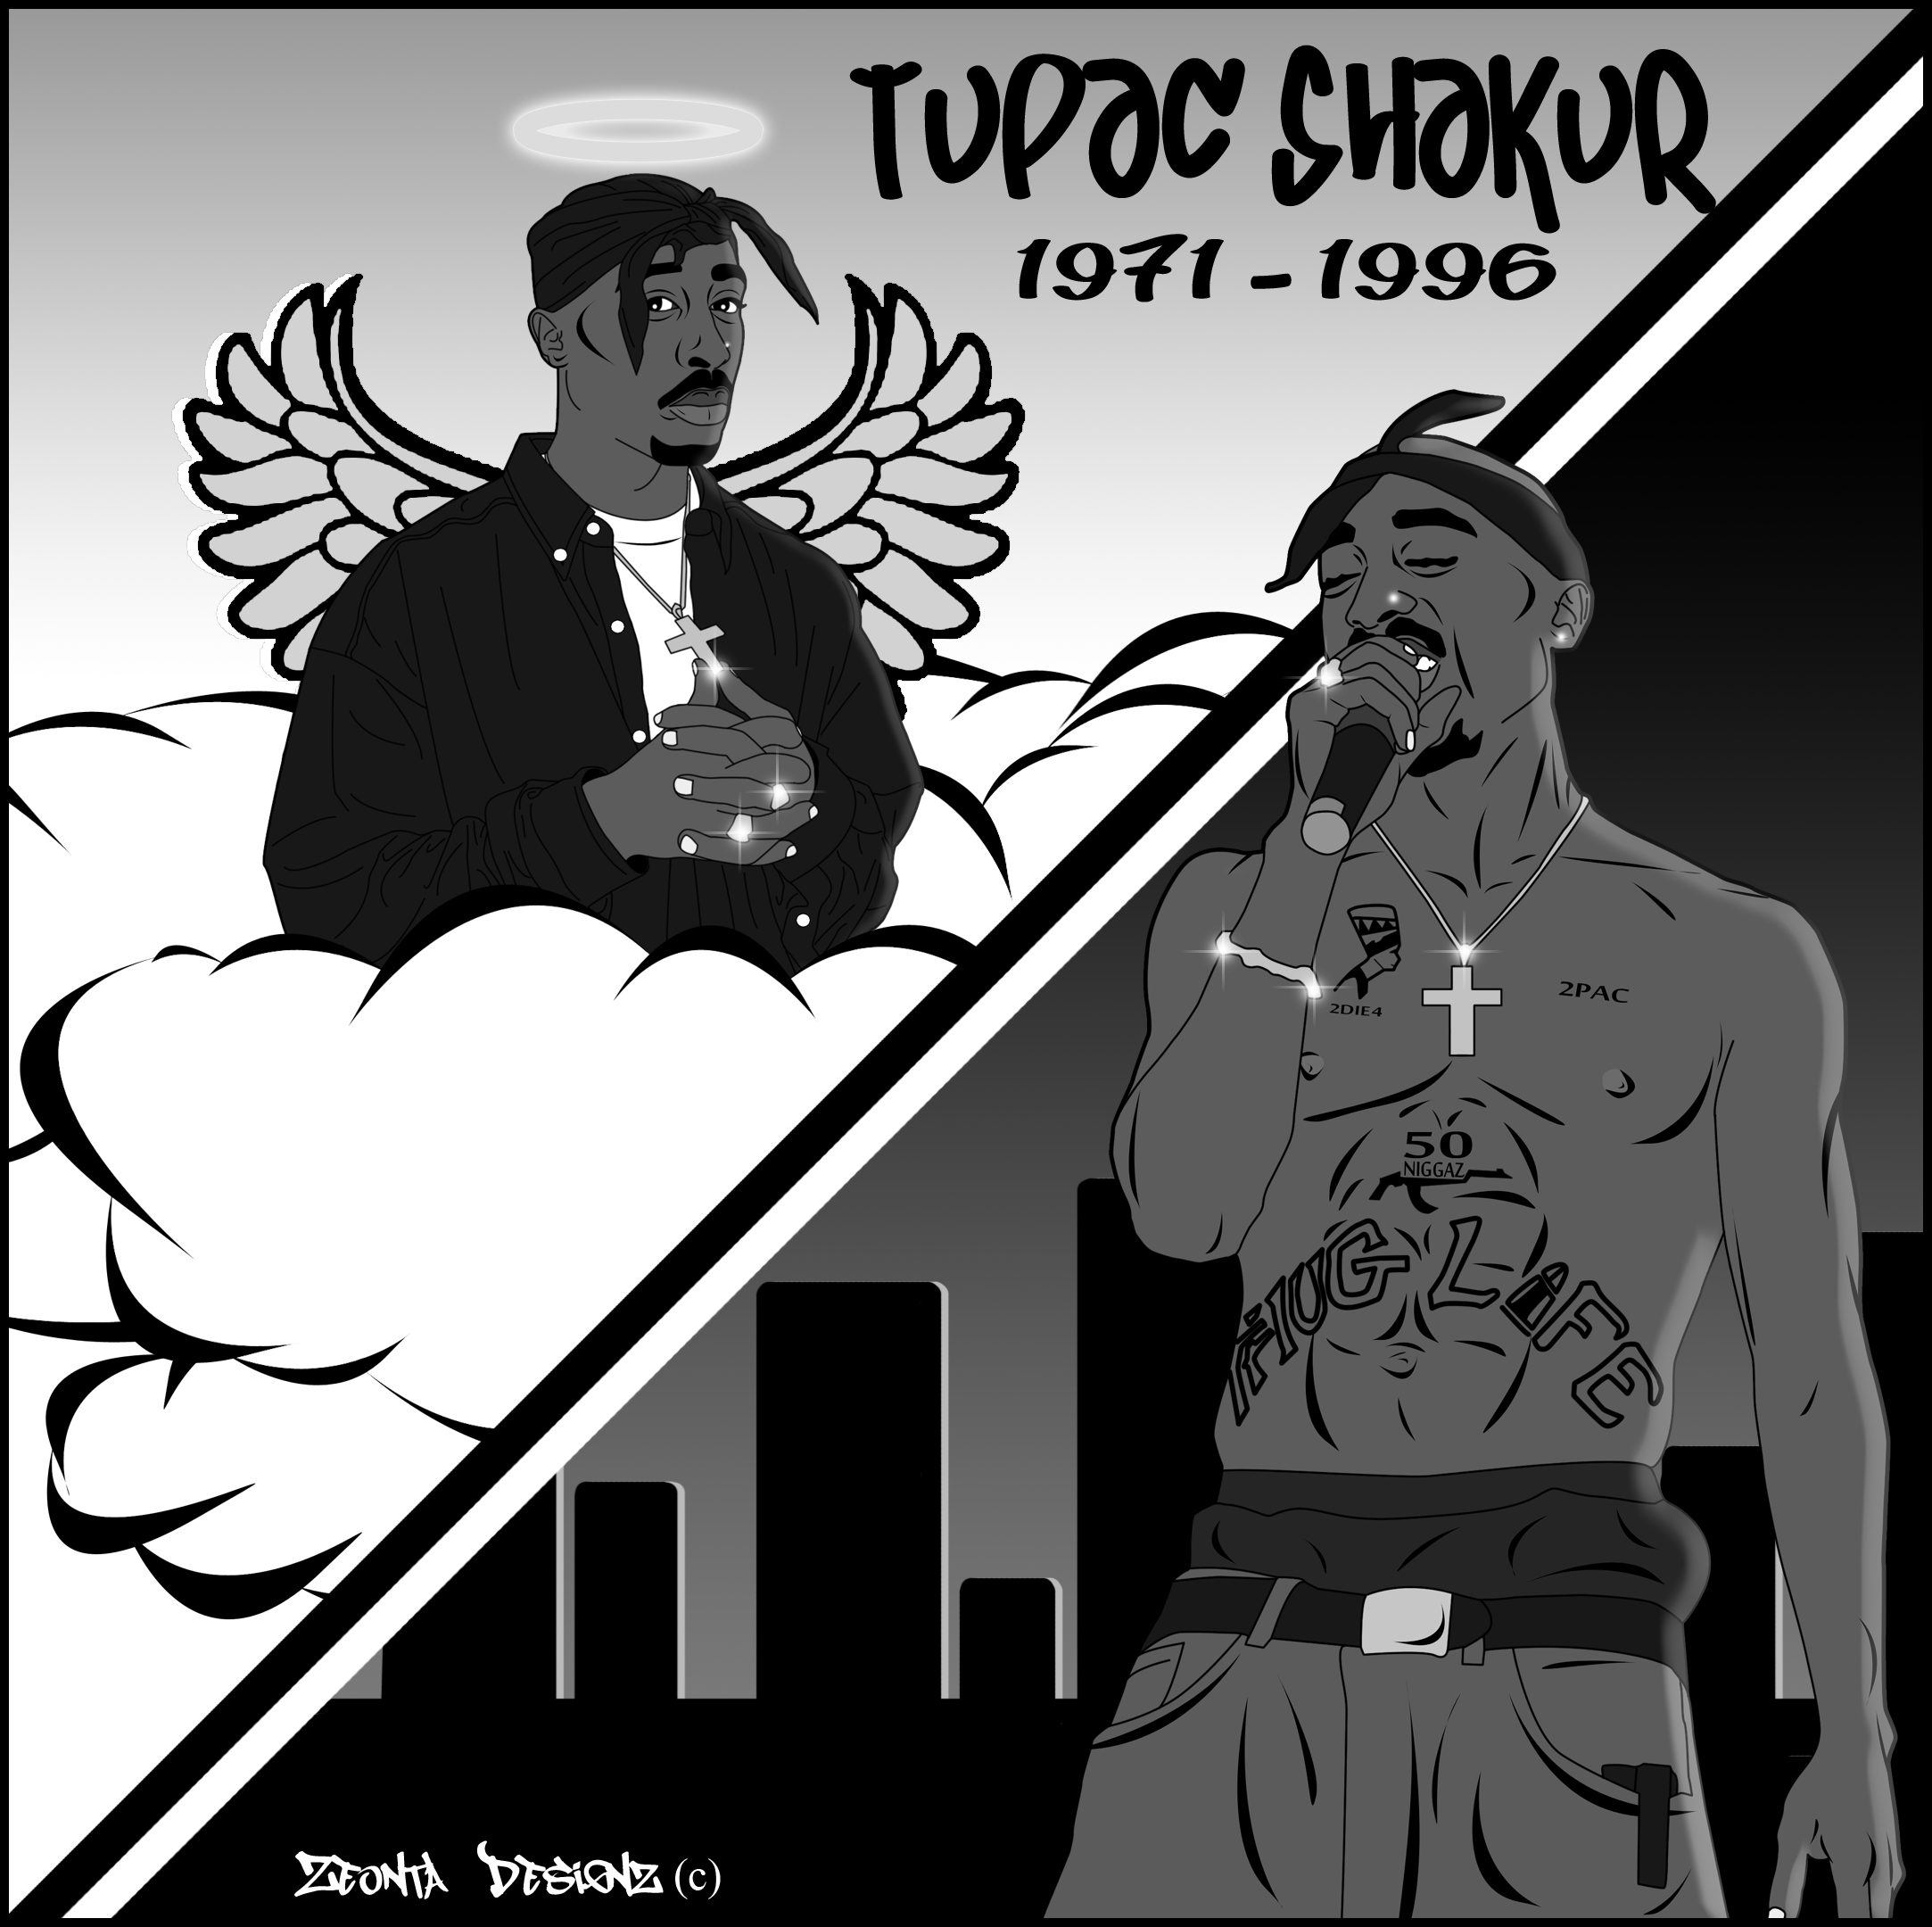 2pac Cartoon Graphic Design (No Color) By ZeontaSmith On